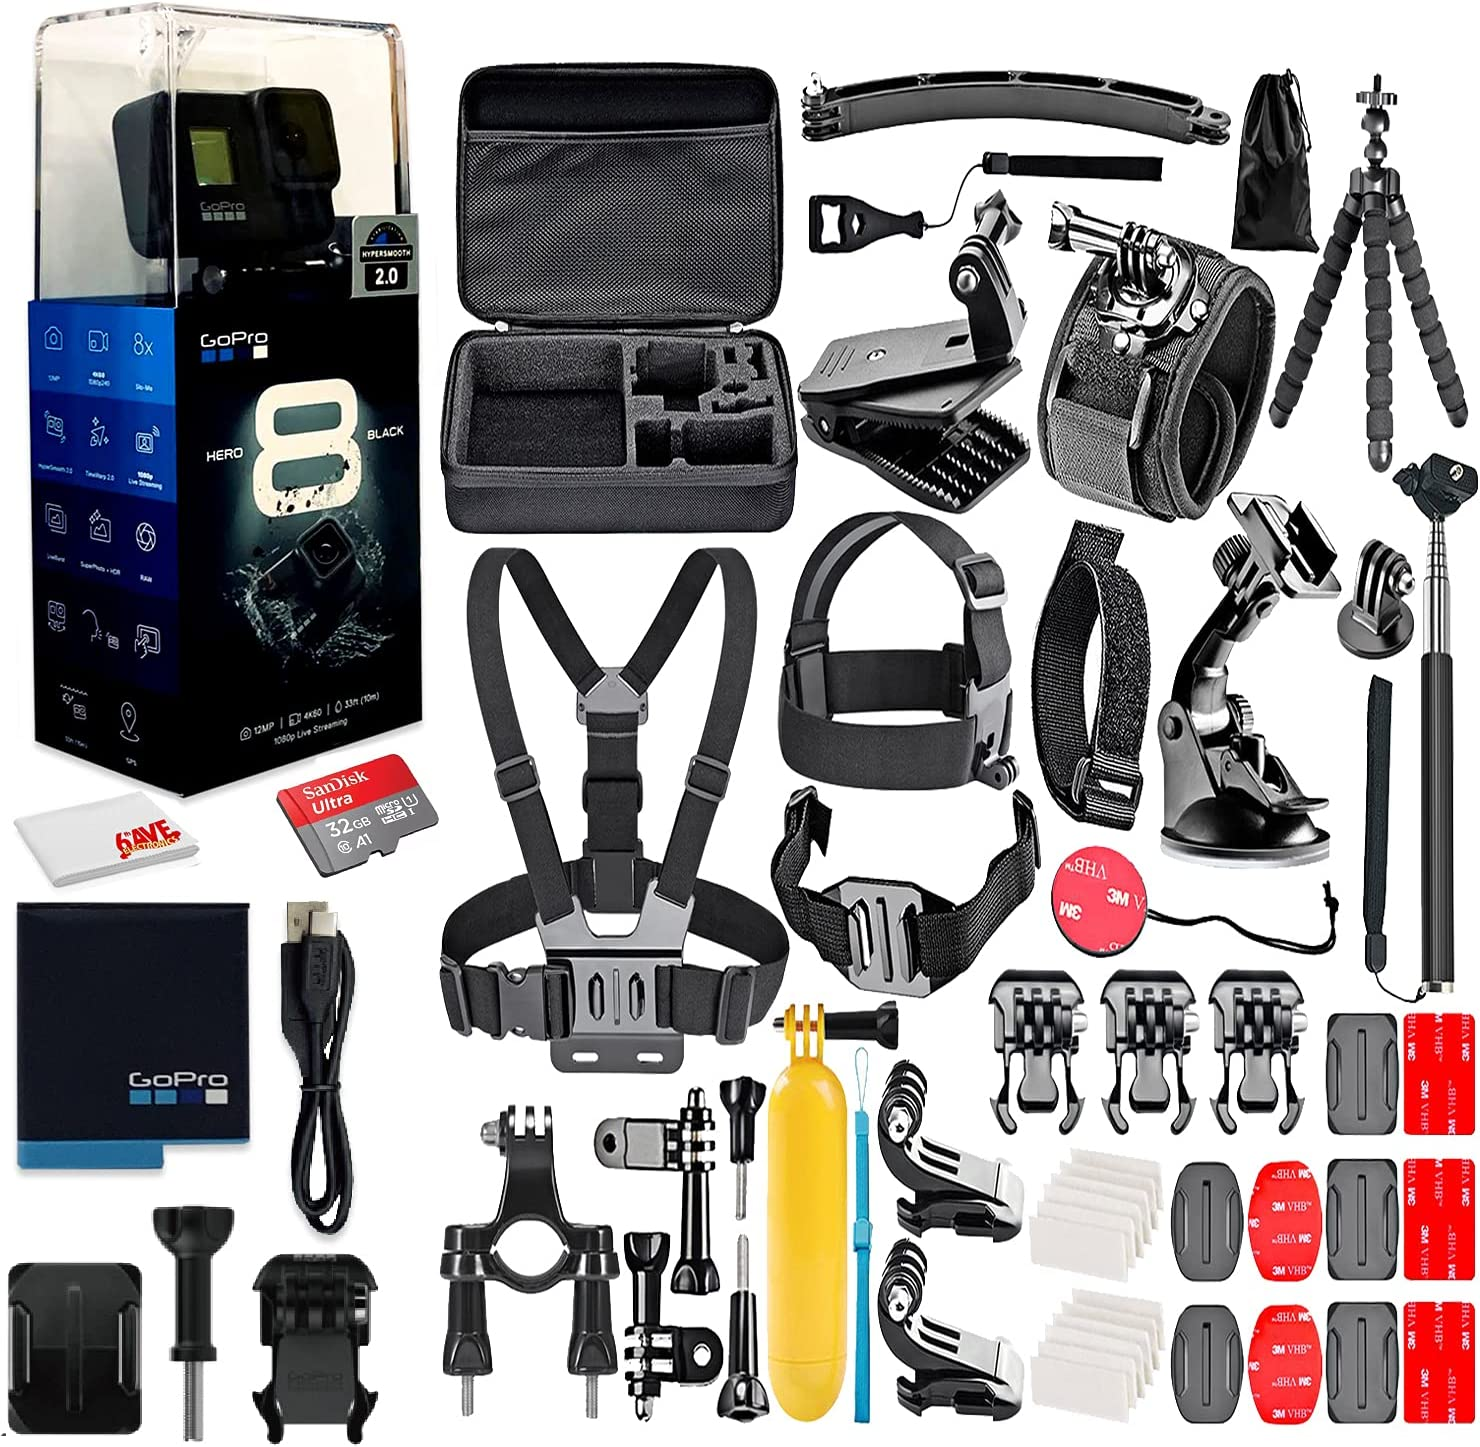 GoPro Excellence HERO8 Black Digital Action Camera Scre Waterproof - Indianapolis Mall Touch